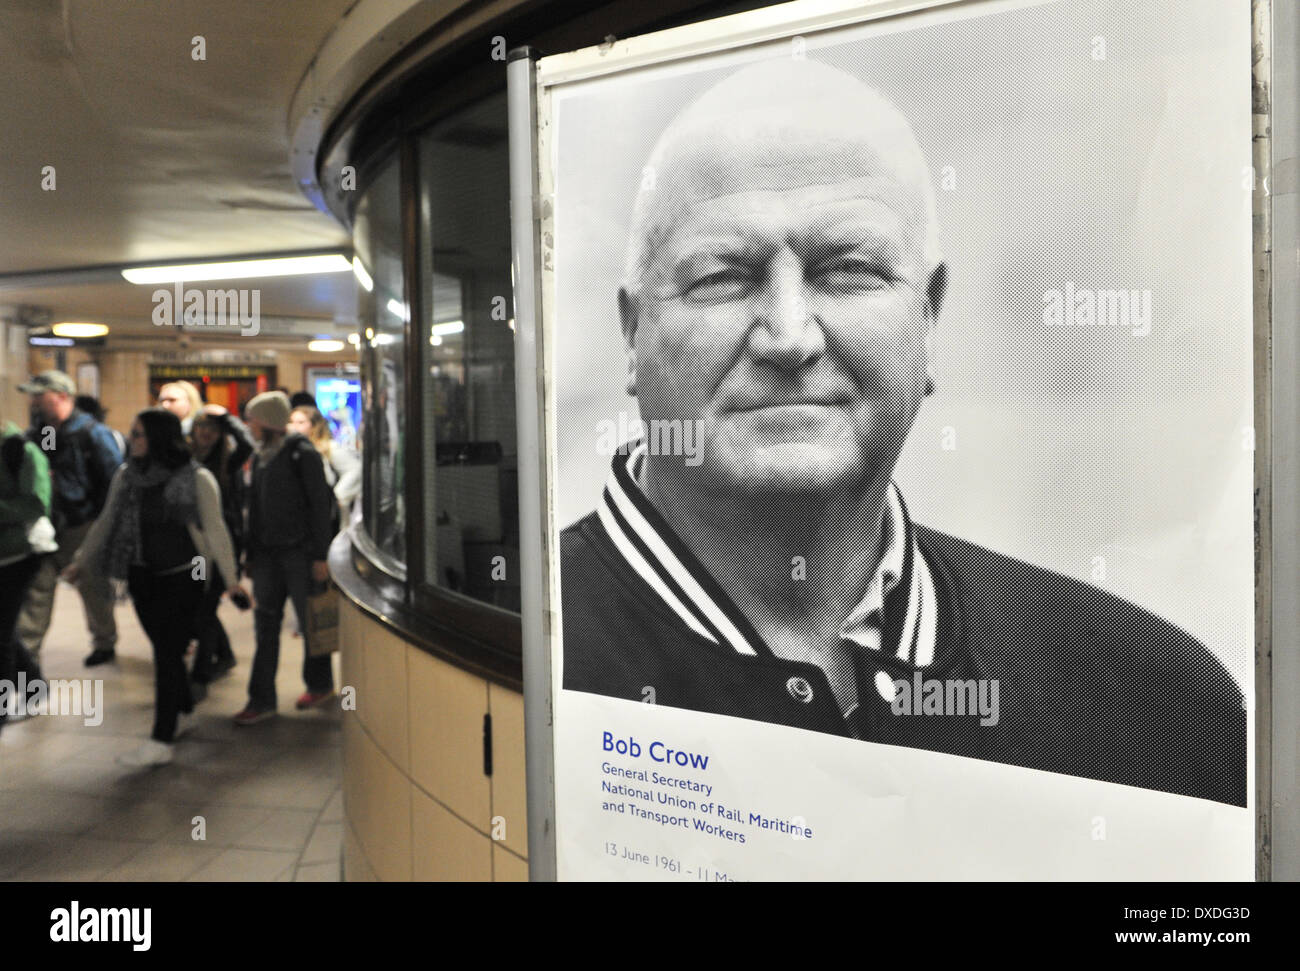 Leicester Square Station, London, UK. 24th March 2014. Evening commuters pass a poster of the late Bob Crow General Secretary of the RMT Union in Leicester Square station. Credit:  Matthew Chattle/Alamy Live News - Stock Image